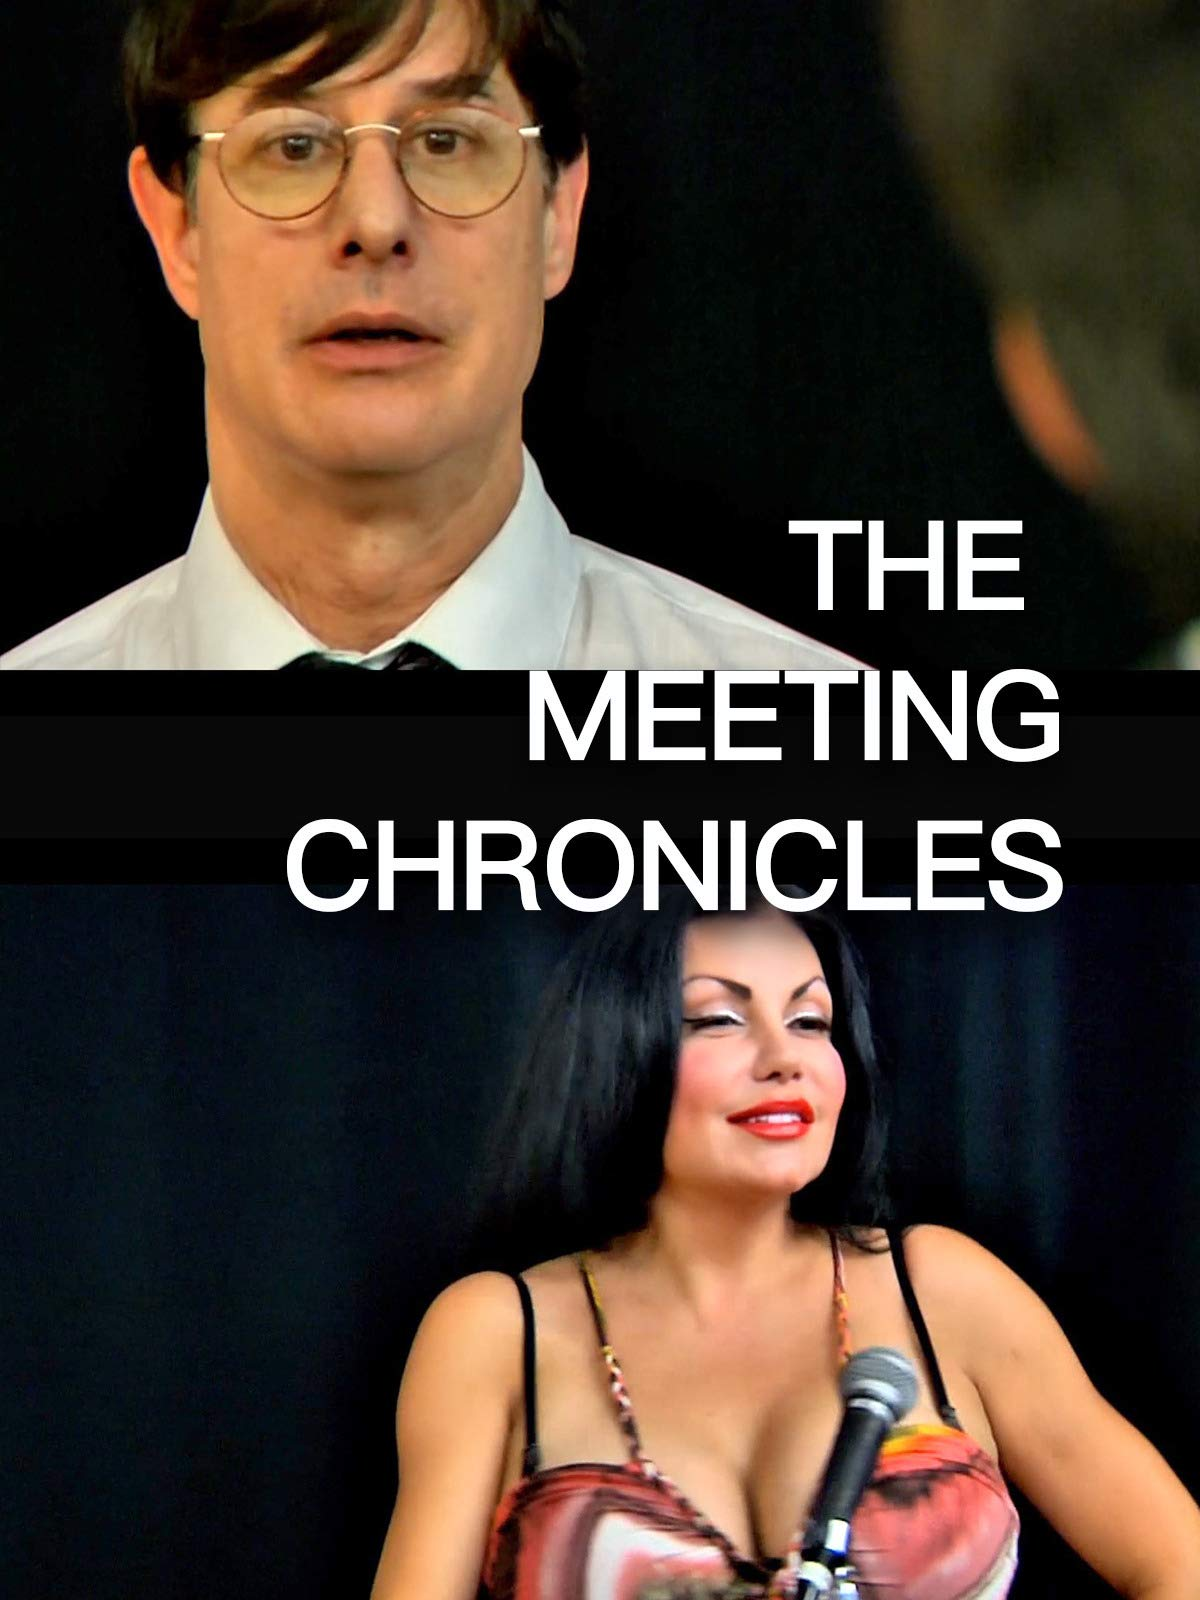 The Meeting Chronicles